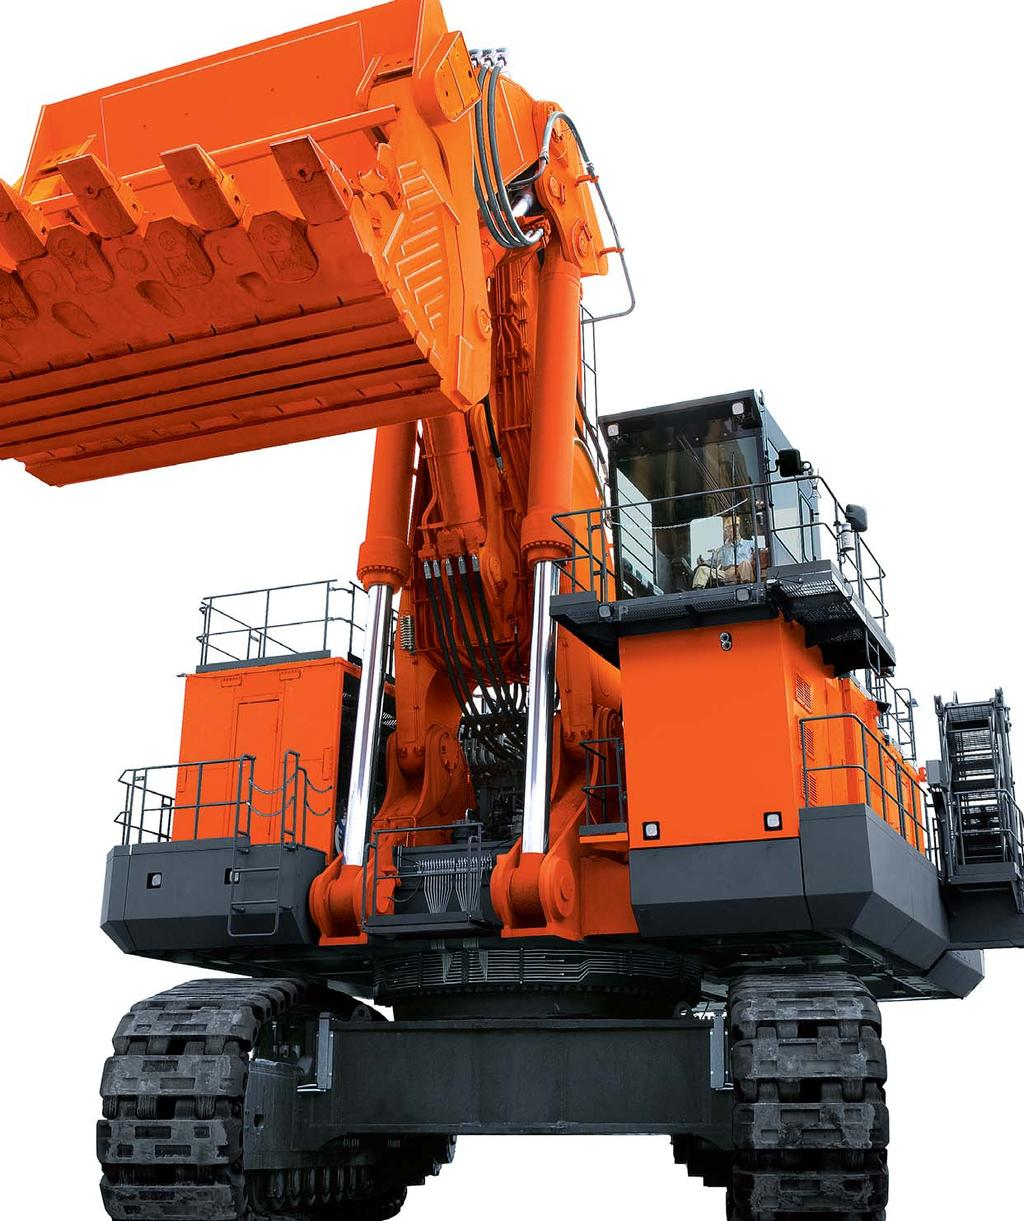 EX- series HYDRAULIC EXCAVATOR Model Code : EX00- Engine Gross Power : x 1 0 kw ( x 1 00 HP) Operating Weight : Loading Shovel :